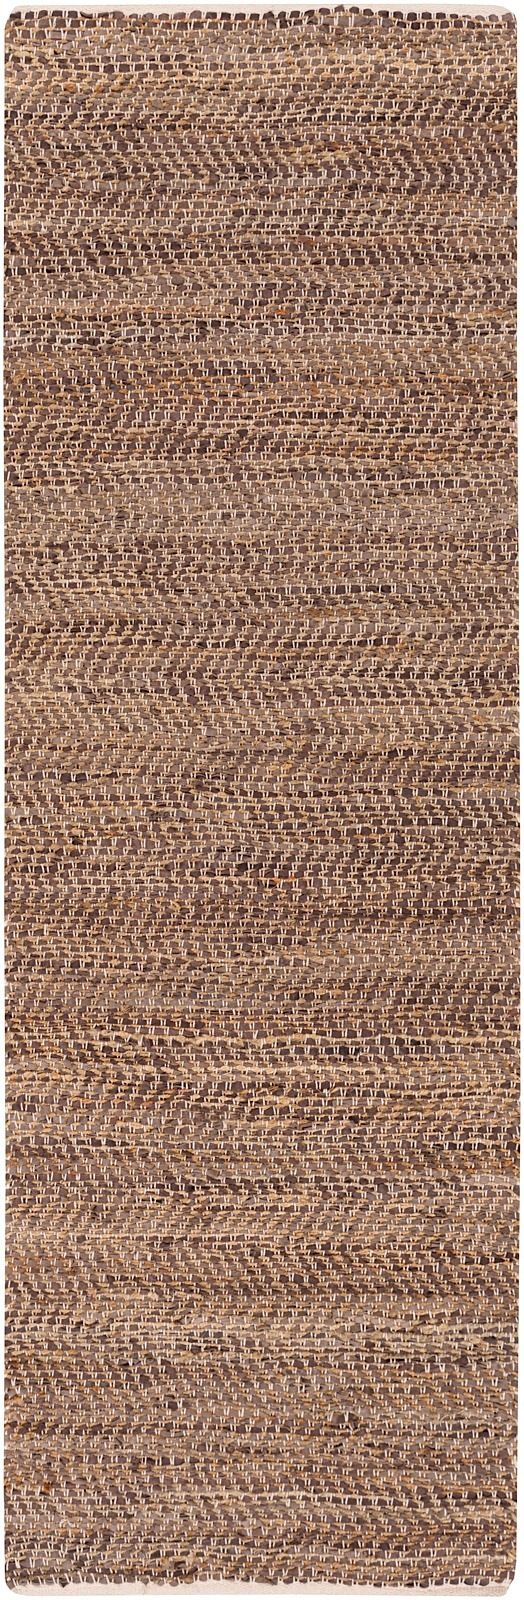 surya adobe natural fiber area rug collection